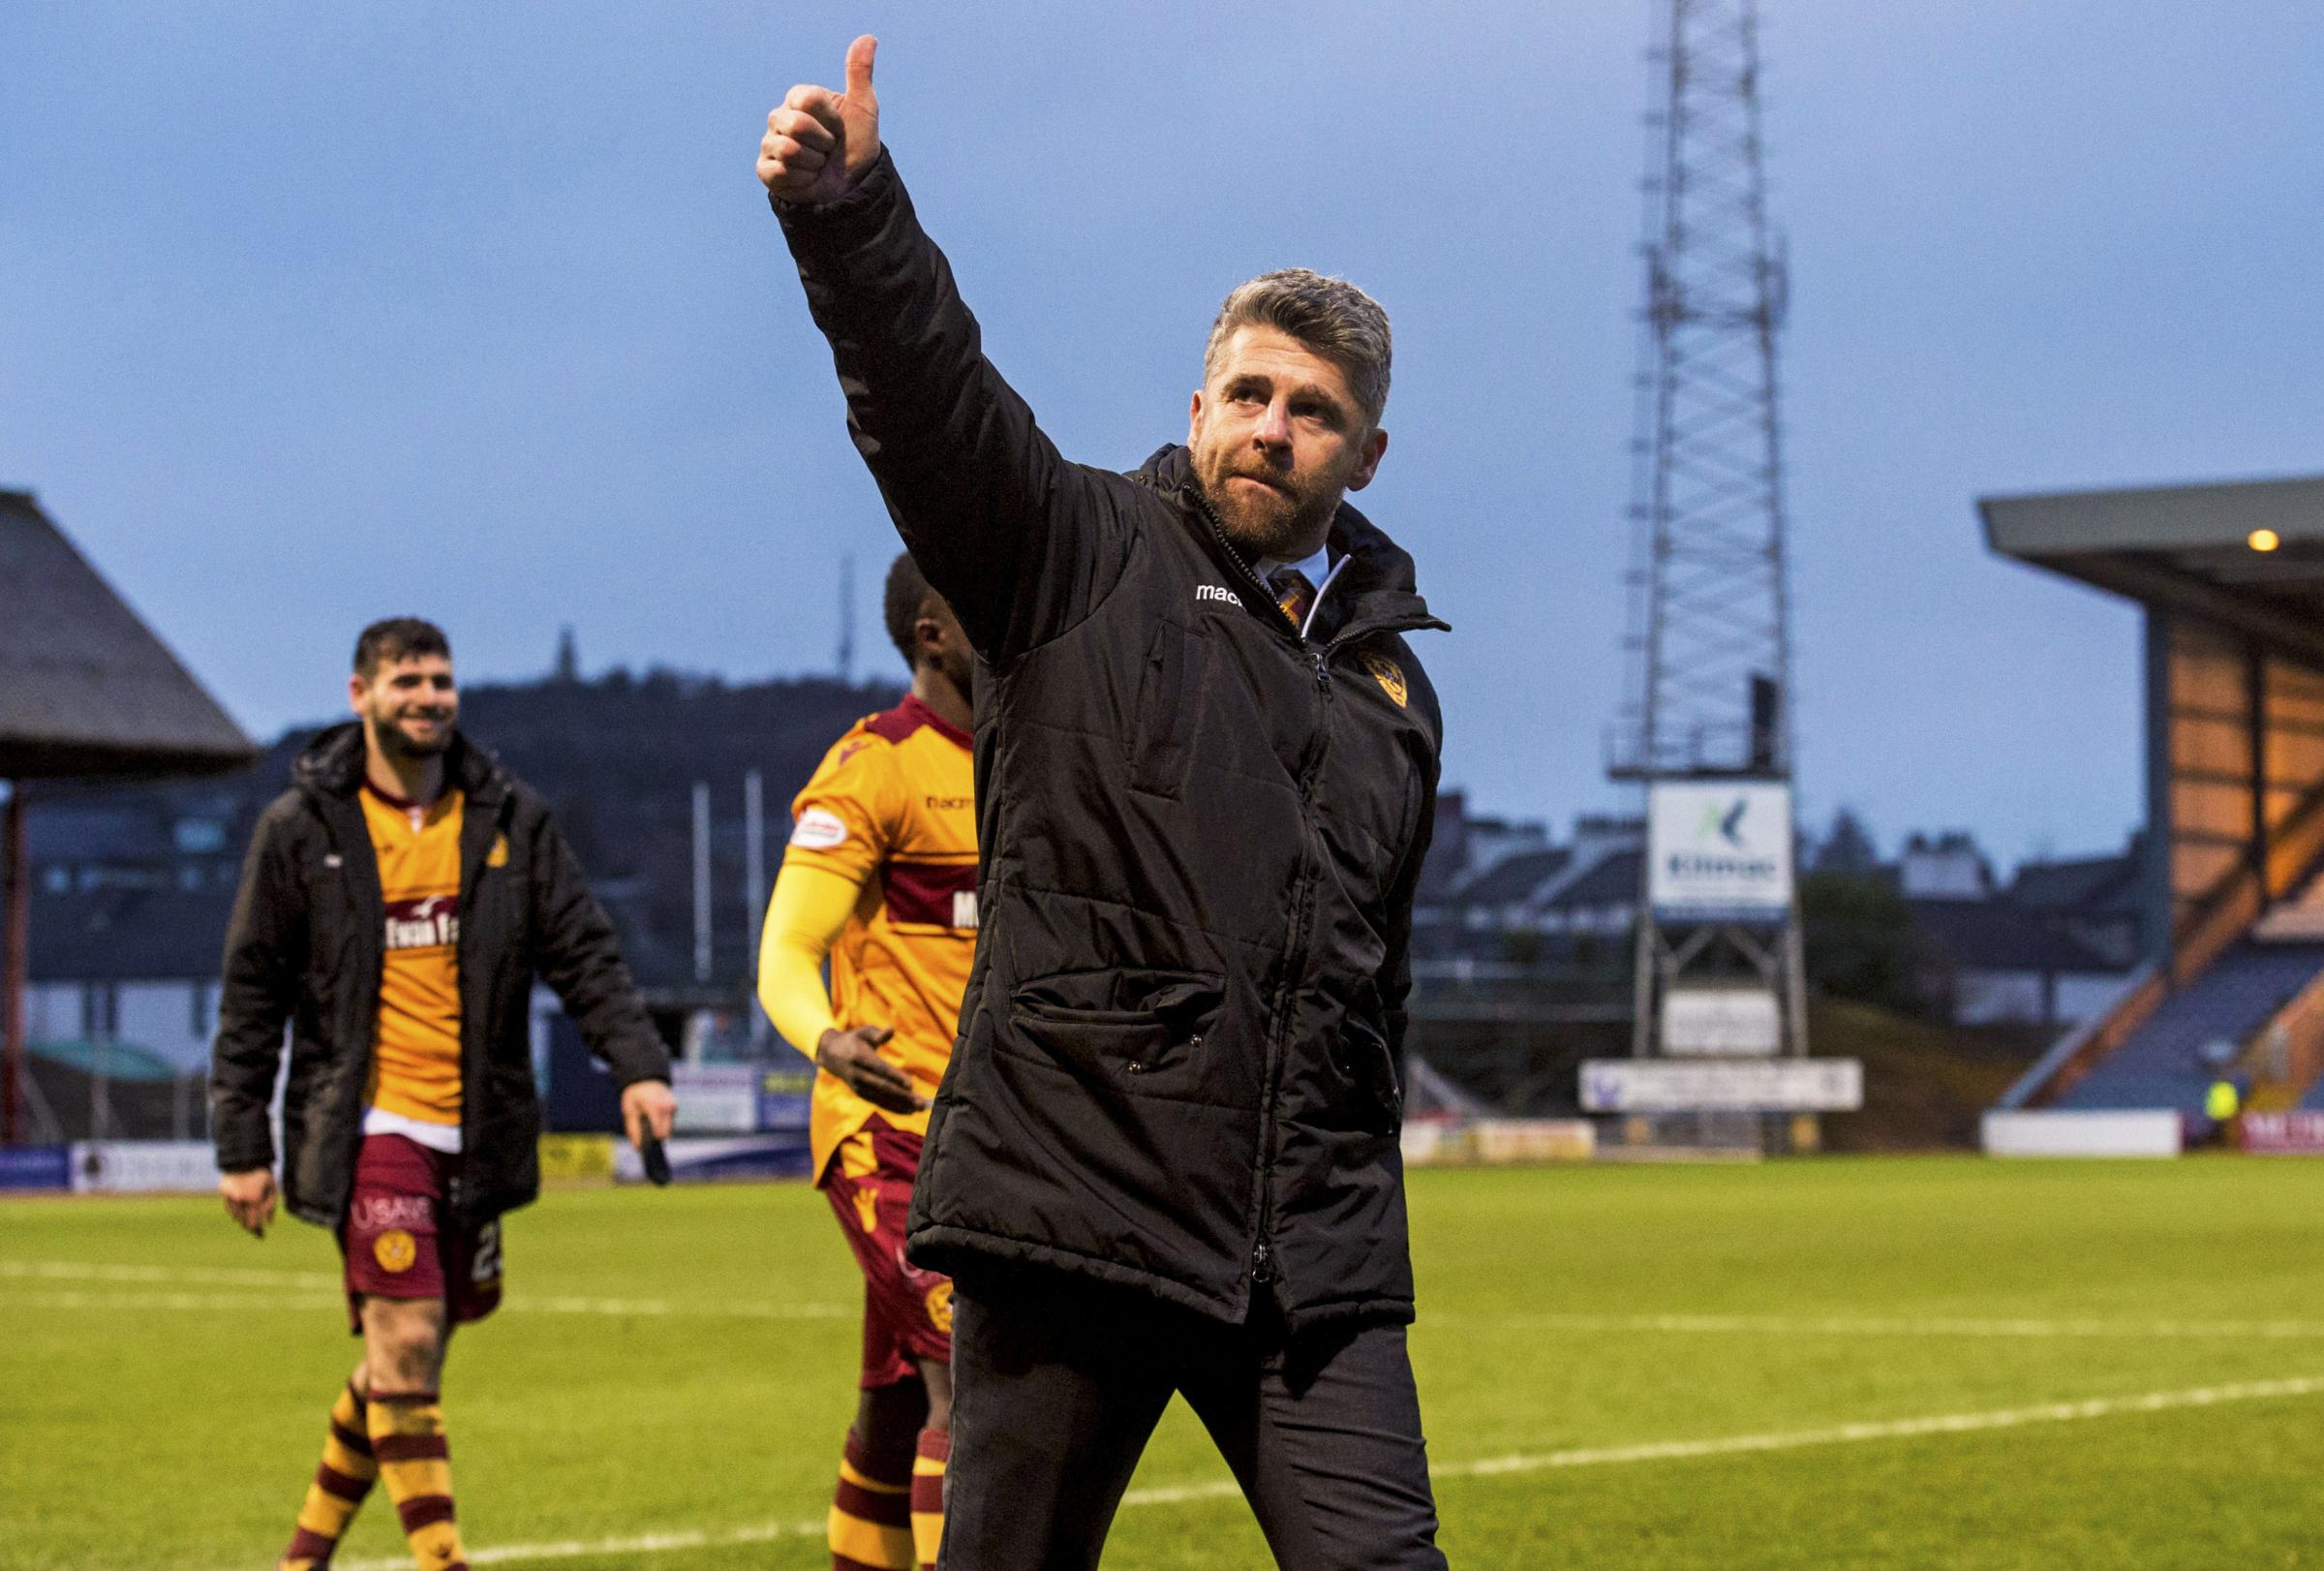 Stephen Robinson would be delighted if Motherwell could finish in the top half in his first full season in charge of the club.